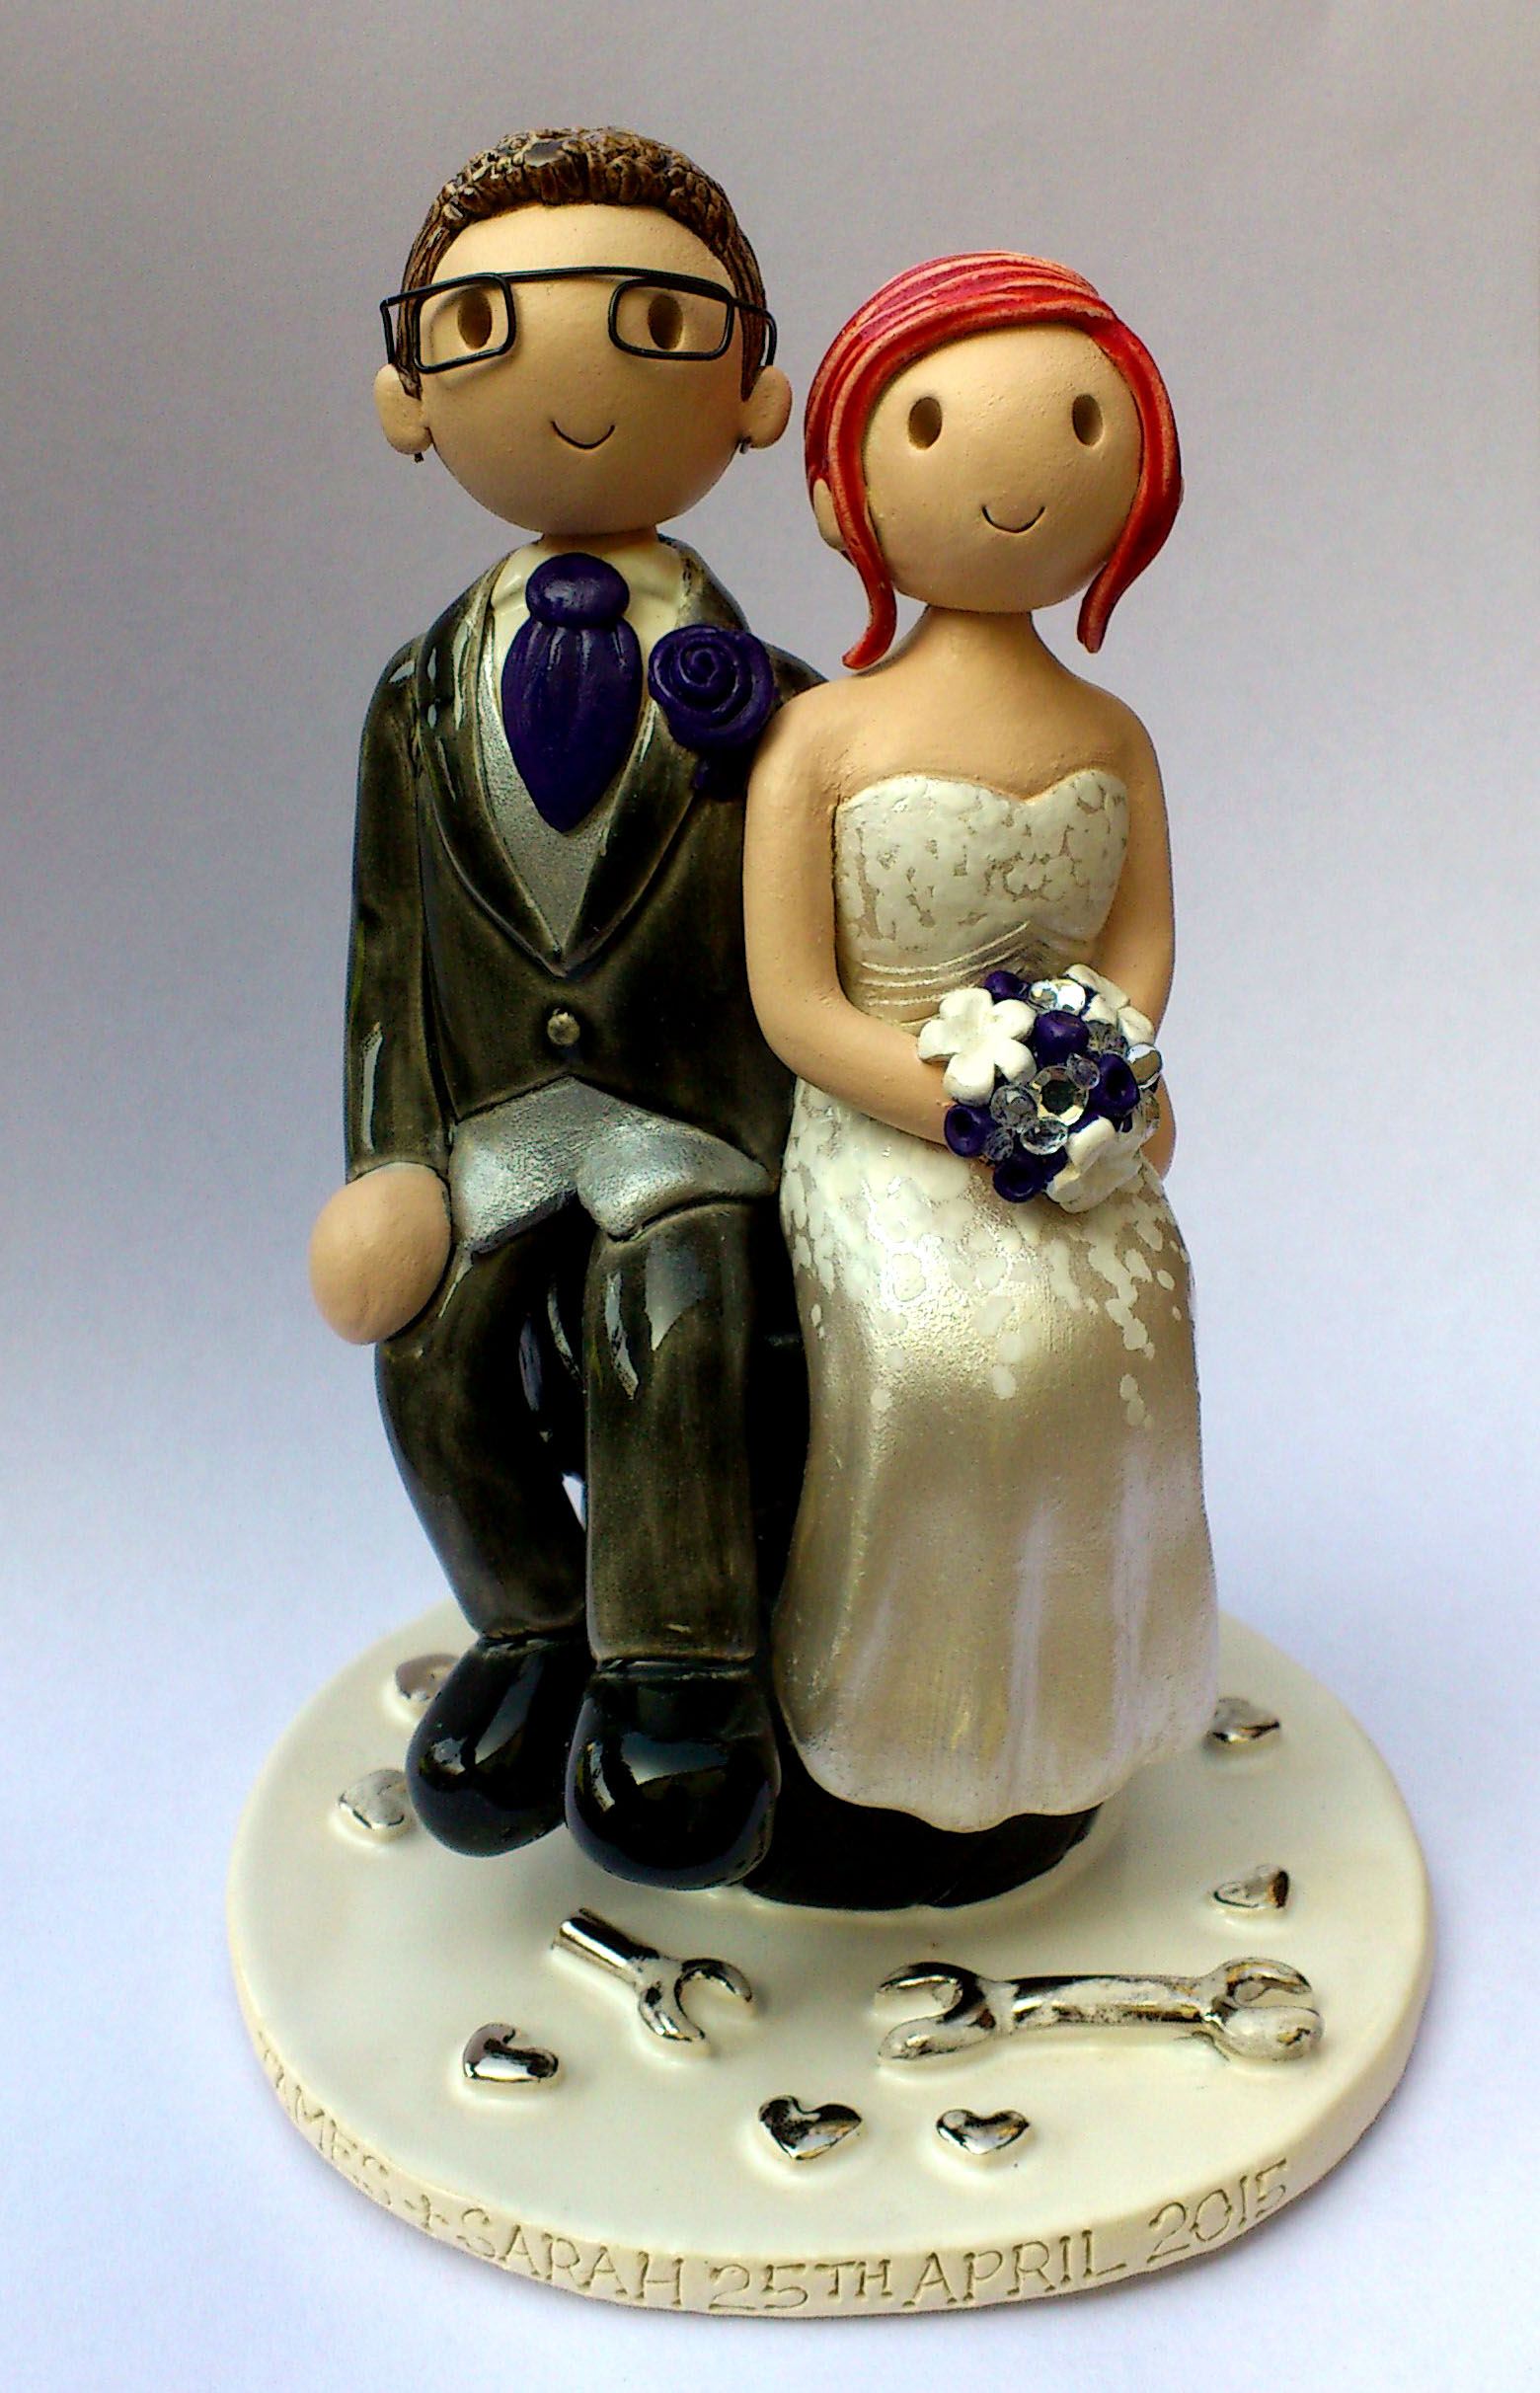 October 2015 Wedding Cake Toppers